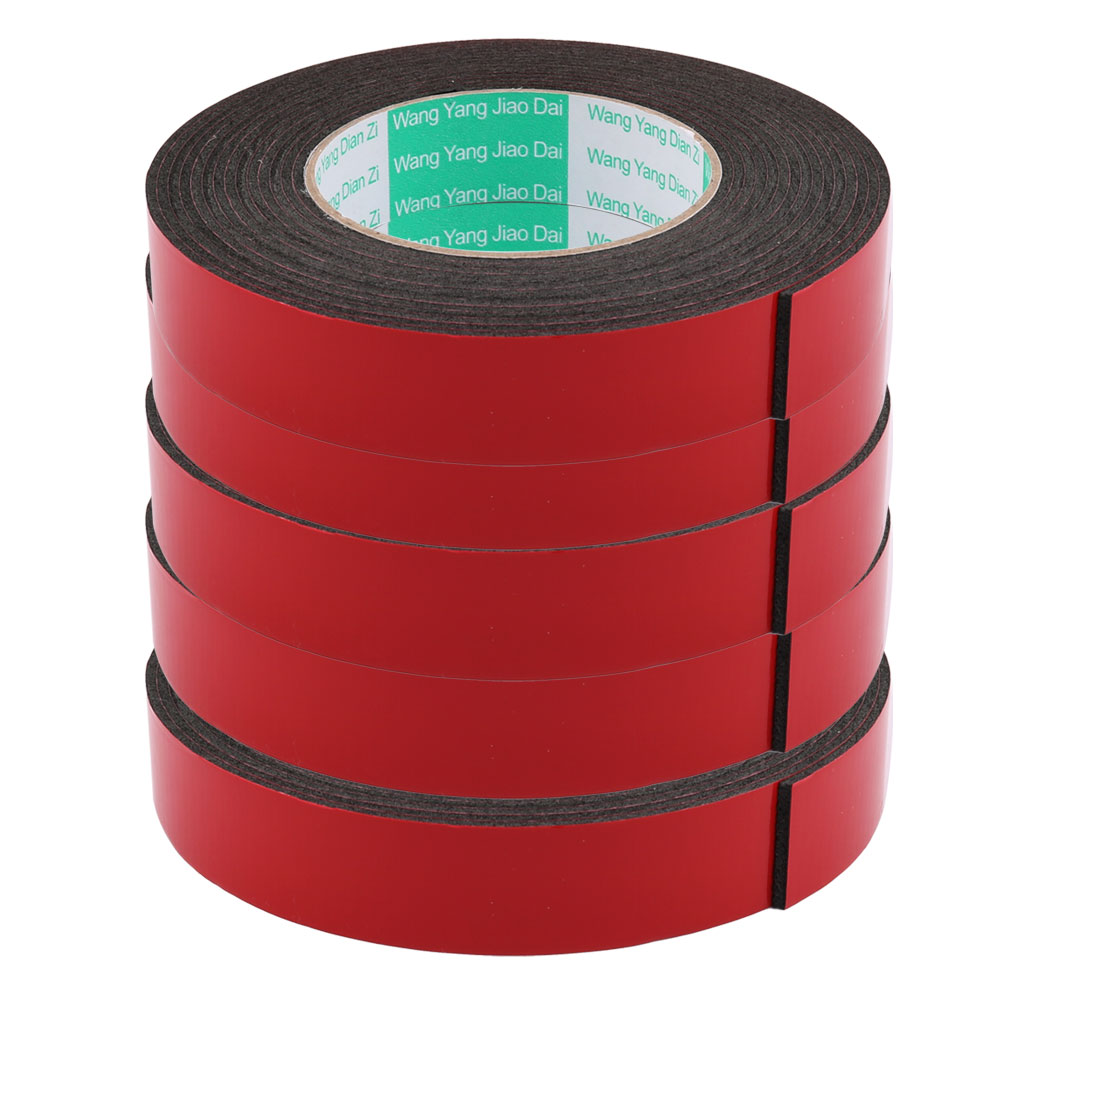 5pcs 2.5CM Width 5 Meters Length 2MM Thick Dual Sided Sealing Shockproof Sponge Tape